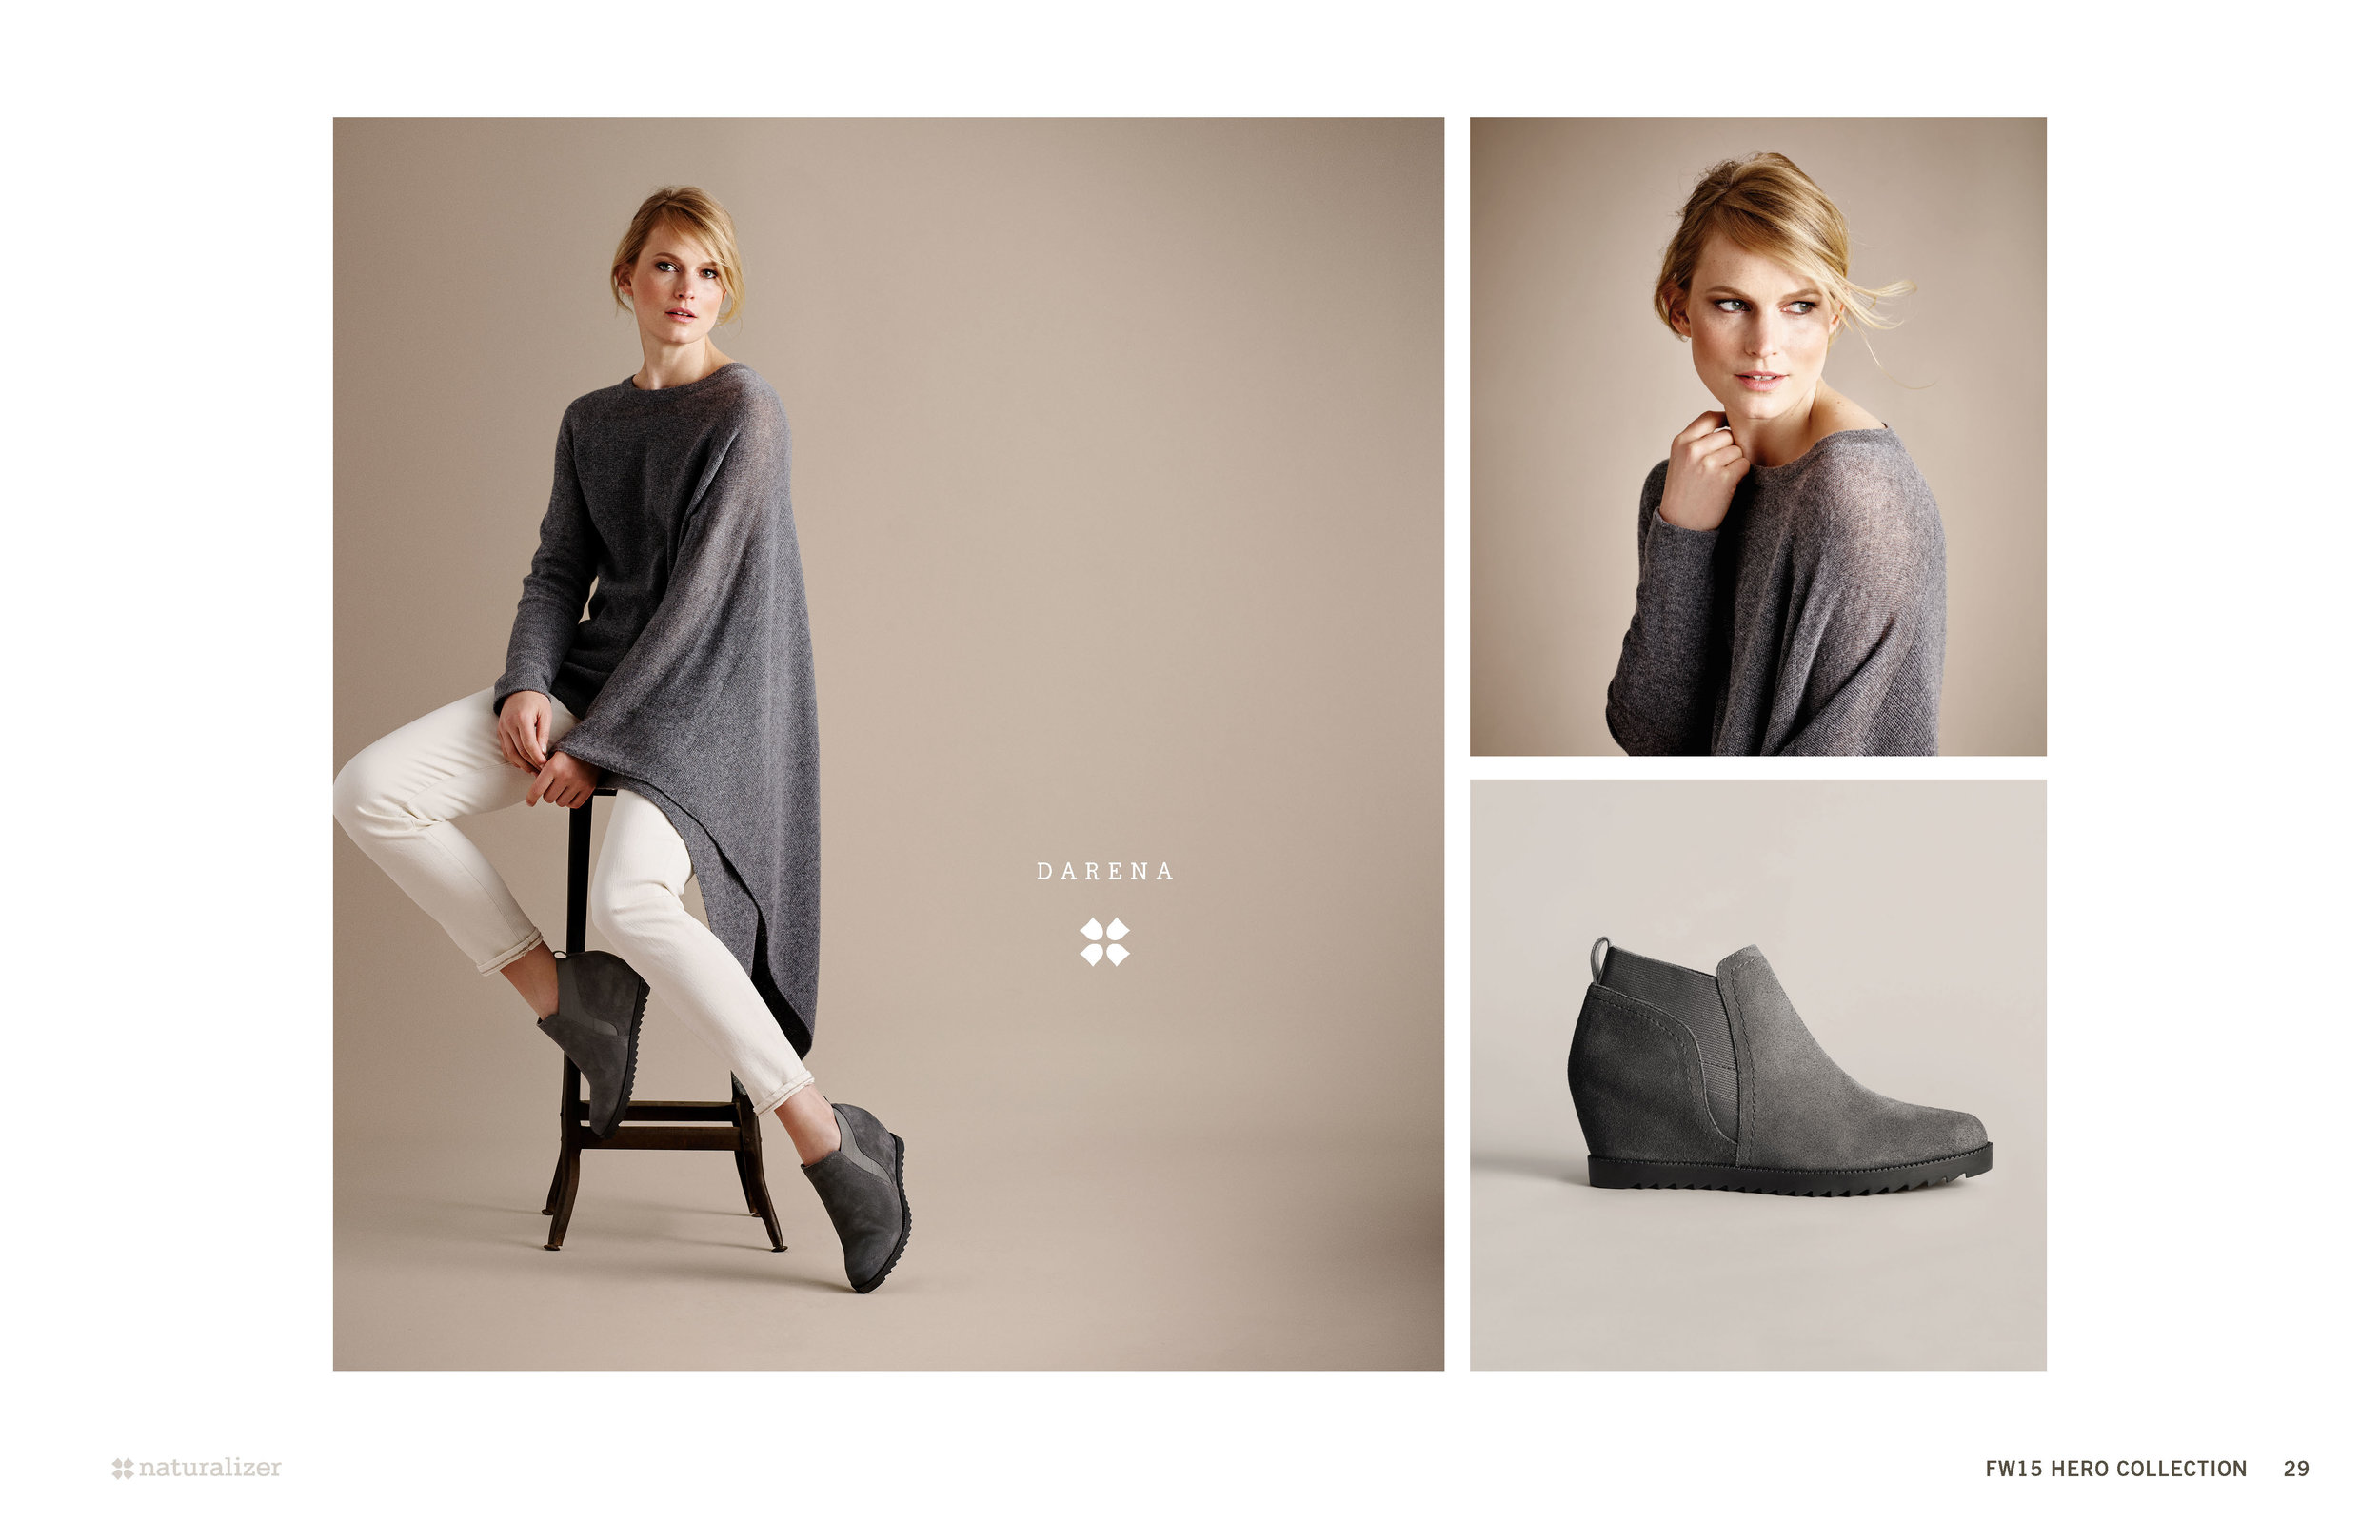 NATFW15 STYLE GUIDE CURRENT_Page_31.jpg